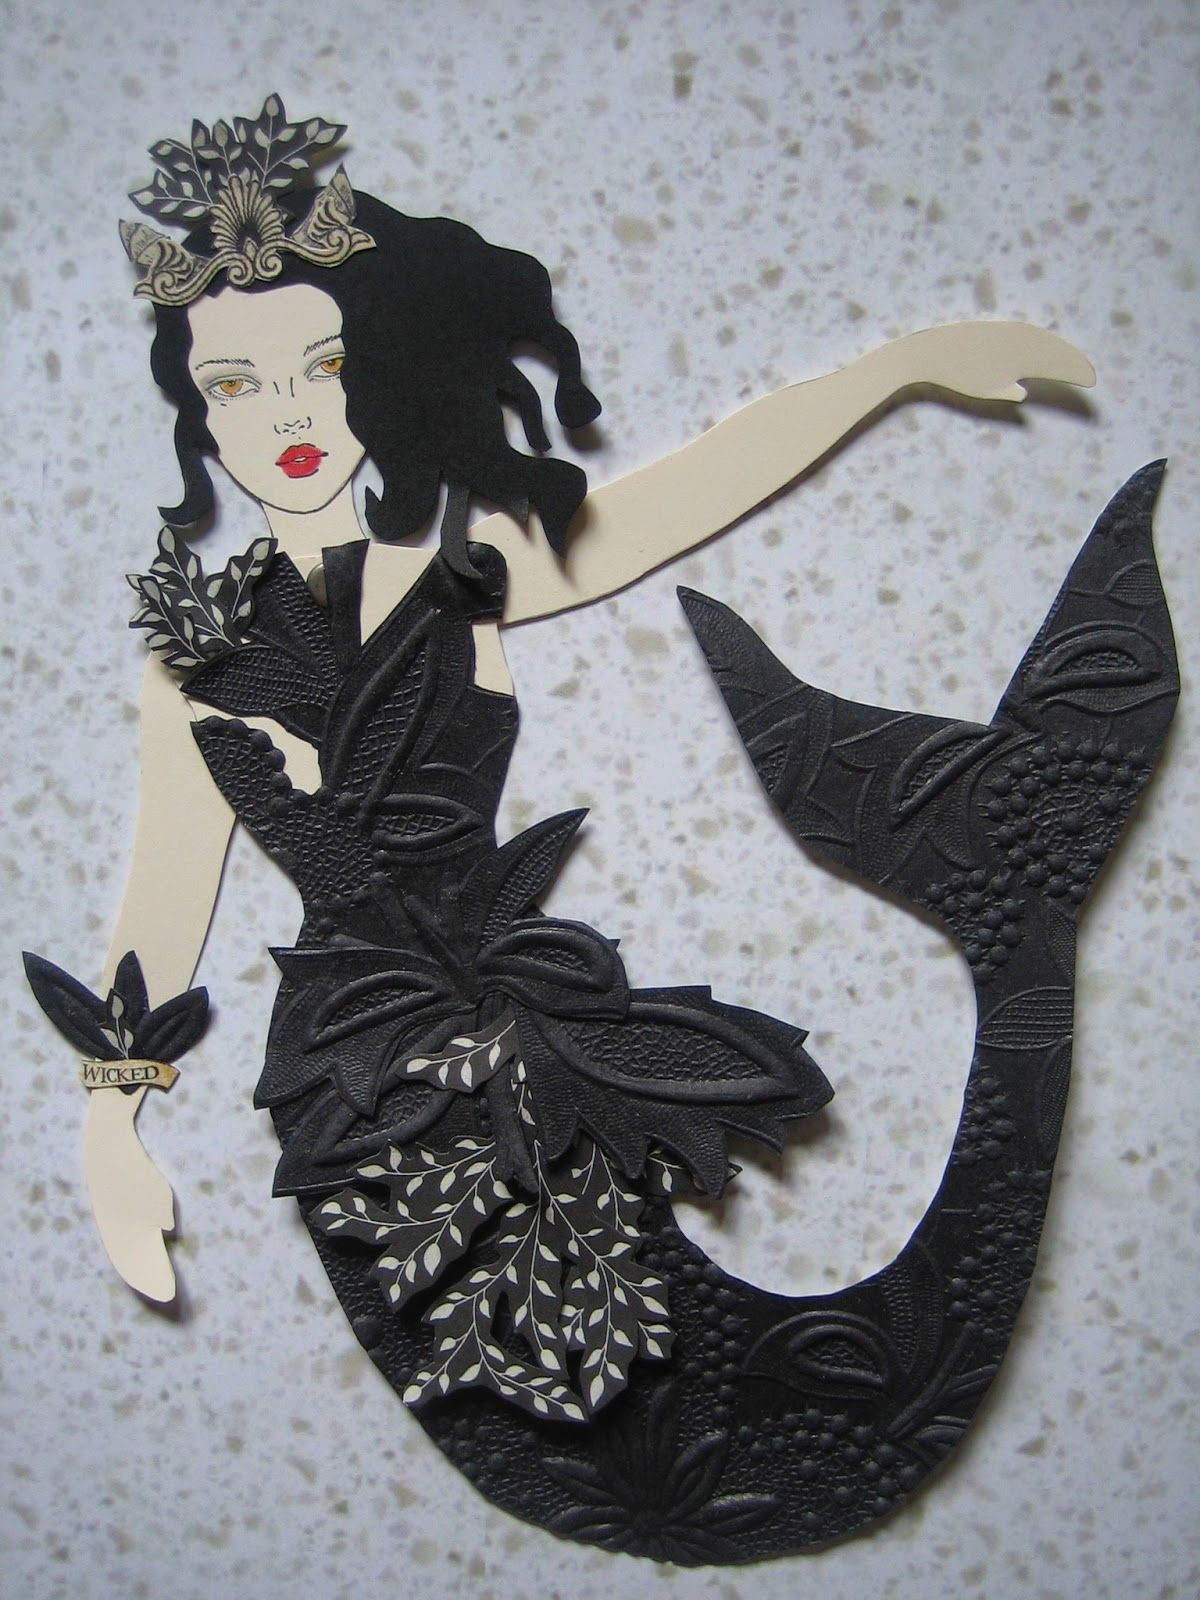 Paper doll using The Enchanted Gallery's free paper doll template and face rubber stamp available at www.theenchantedgallery.com doll art in the picture above was made by http://thedoilyduck.blogspot.com